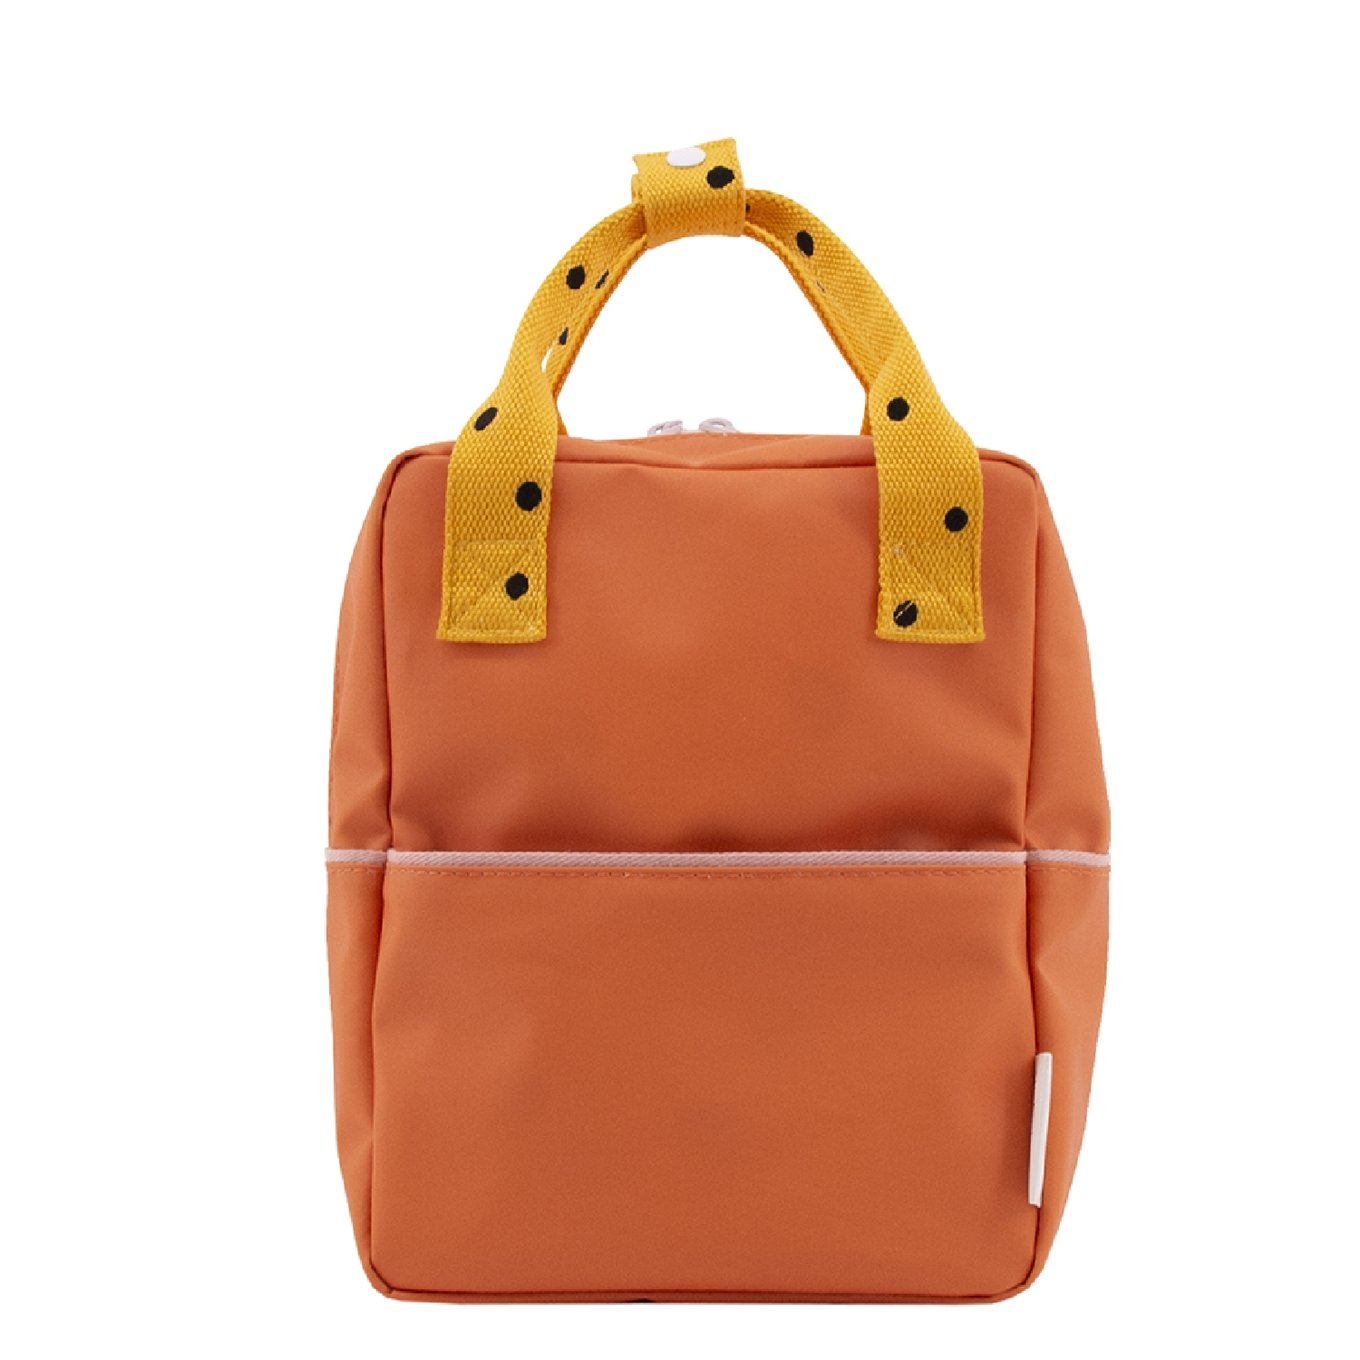 Sticky Lemon Freckles Backpack Small carrot orange sunny yellow candy pink Kindertas